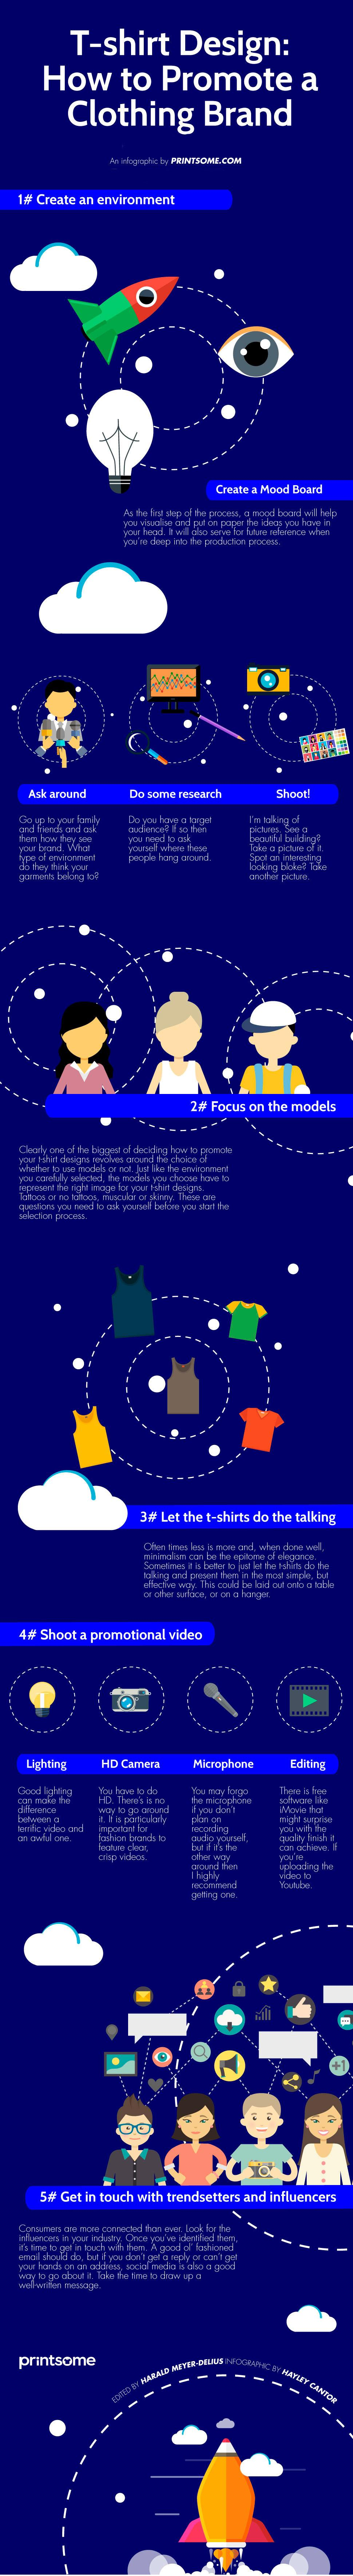 clothing brand infographic, how to promote your clothing brand